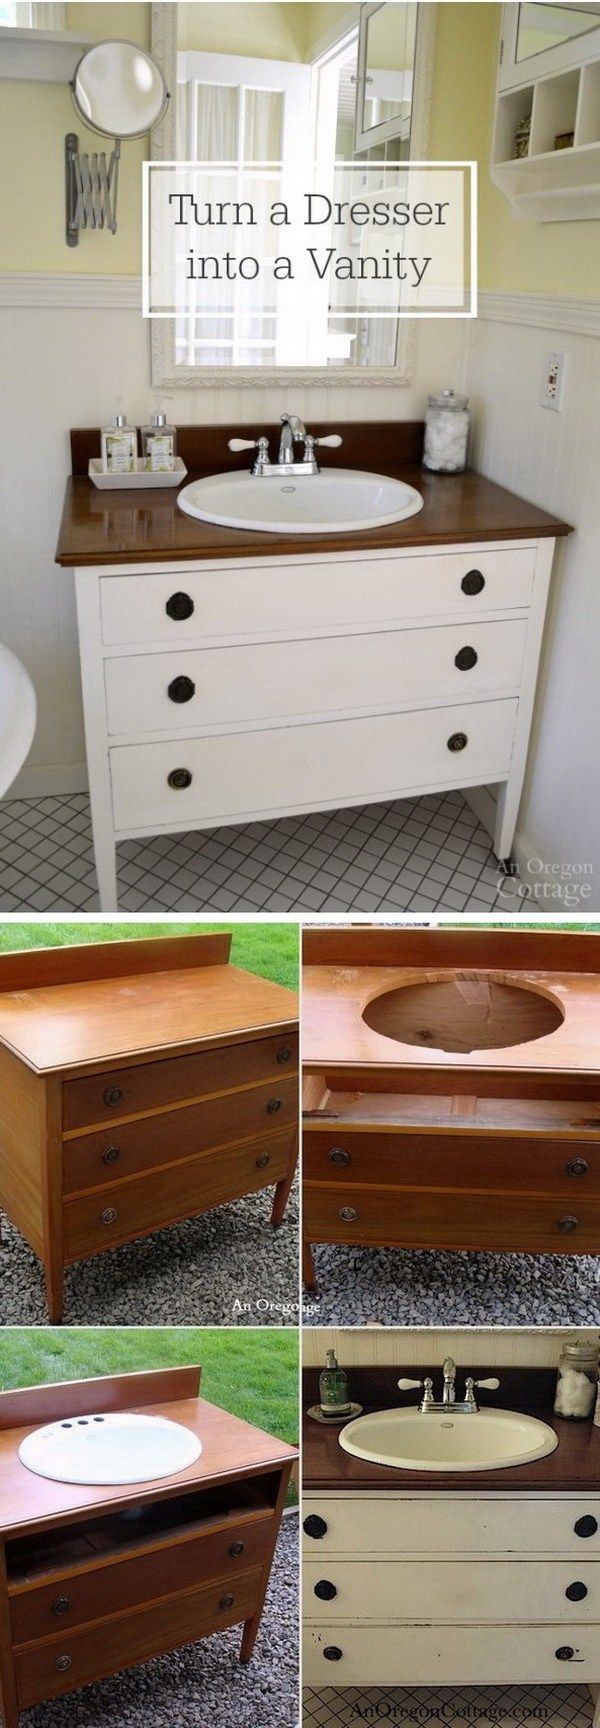 Diy Bathroom Vanity With Drawers For Storage Get An Old Table From Your Garage Or At A Flea Mark Diy Furniture Easy Diy Bathroom Furniture Diy Furniture Hacks [ 1728 x 600 Pixel ]